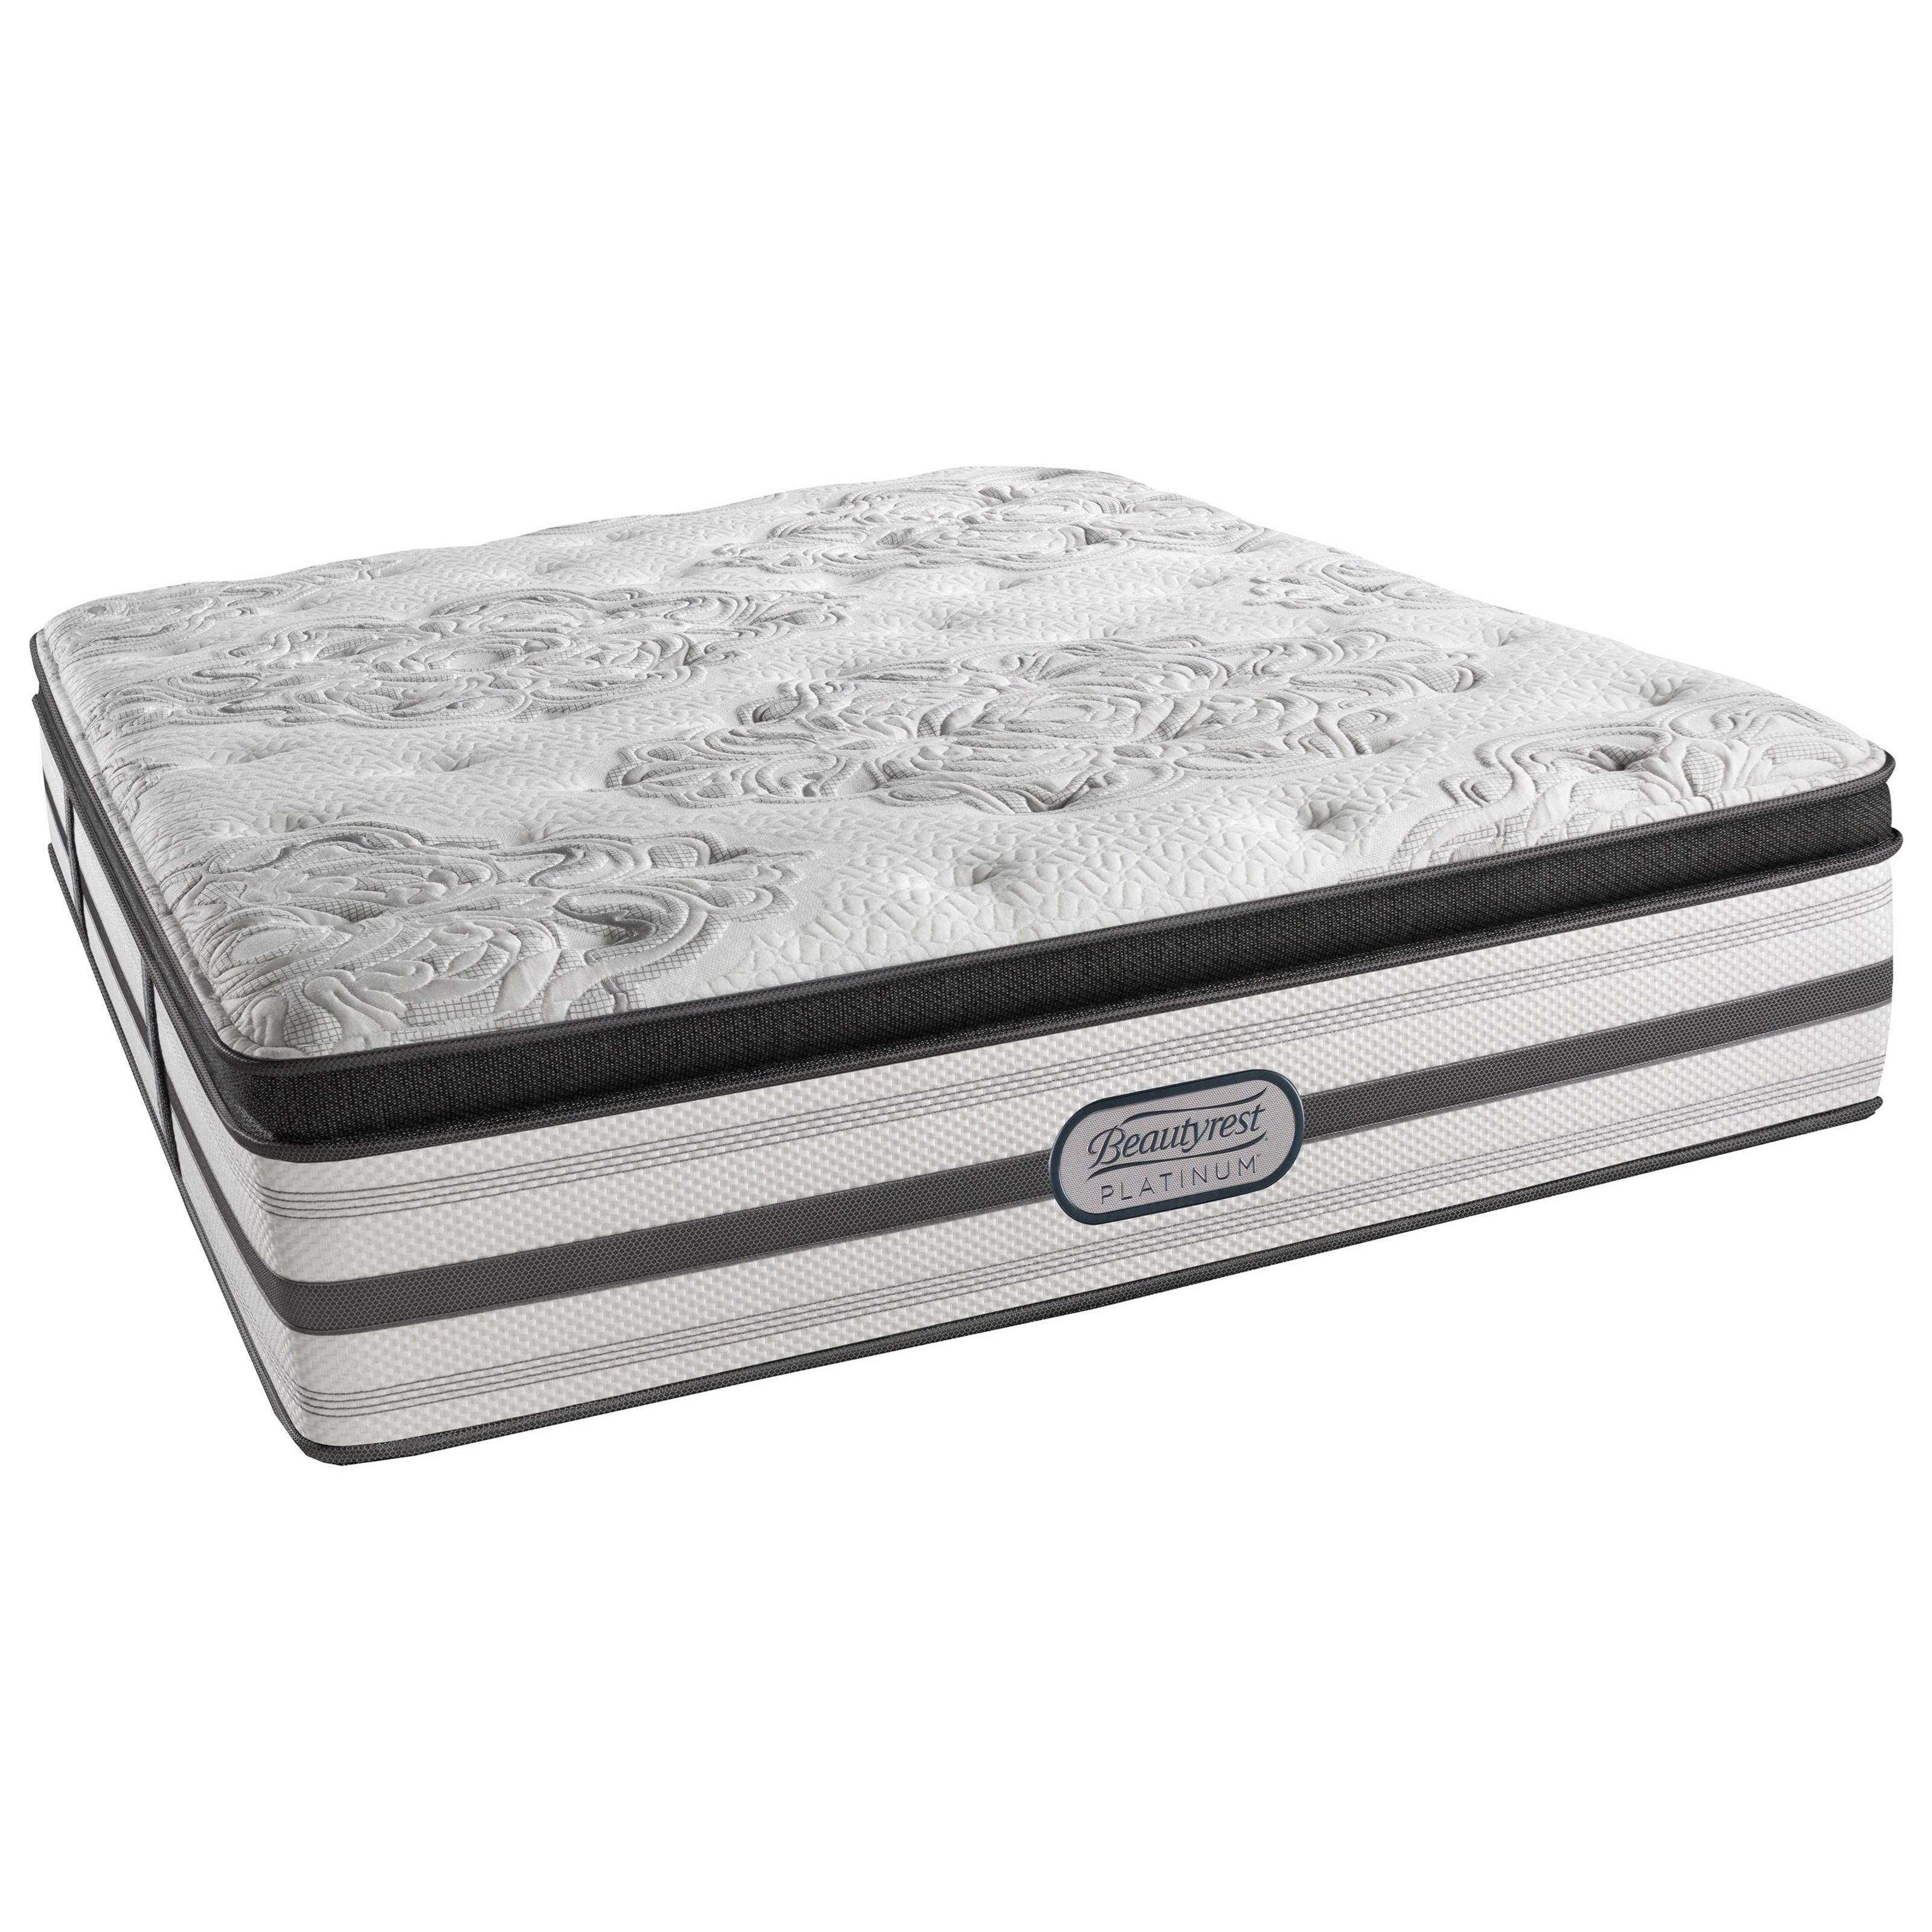 "Simmons Sonny King Luxury Firm PT 15"" Mattress - Item Number: LV3LFPT-K"